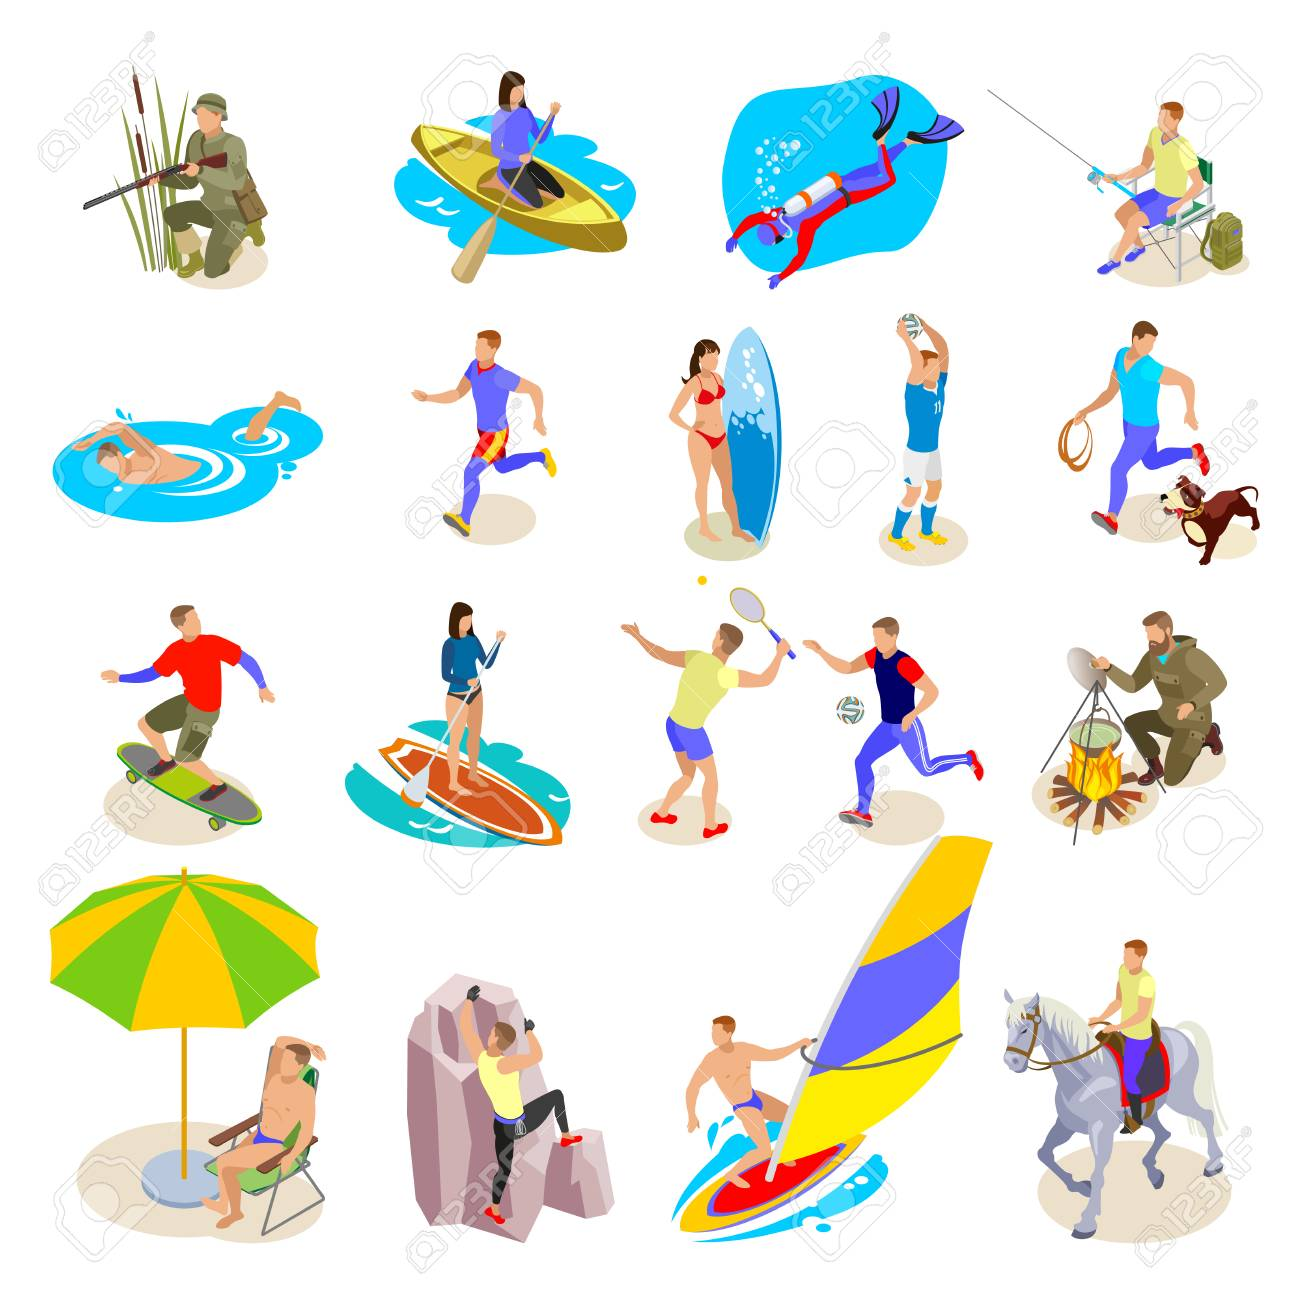 Outdoor activities icons set with sports and recreation symbols isometric isolated vector illustration - 127268777